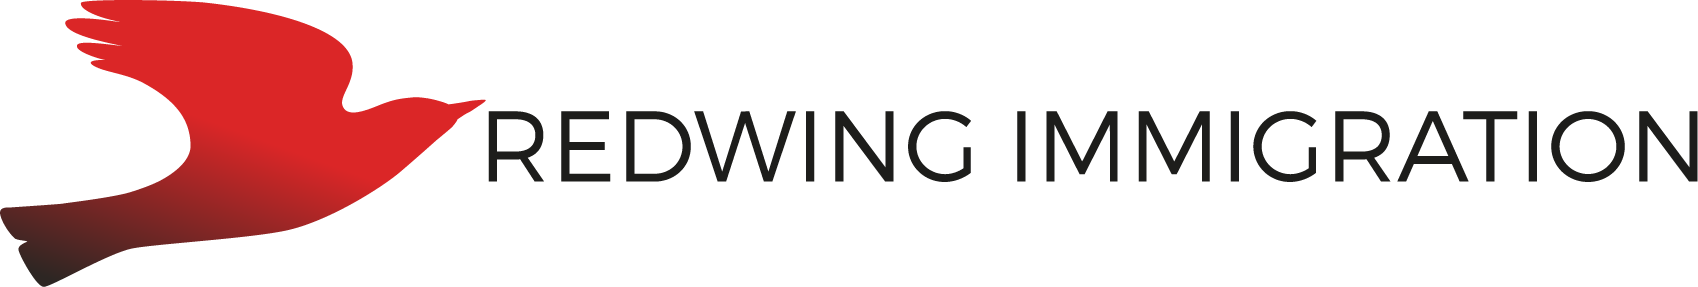 redwing-immigration_logo